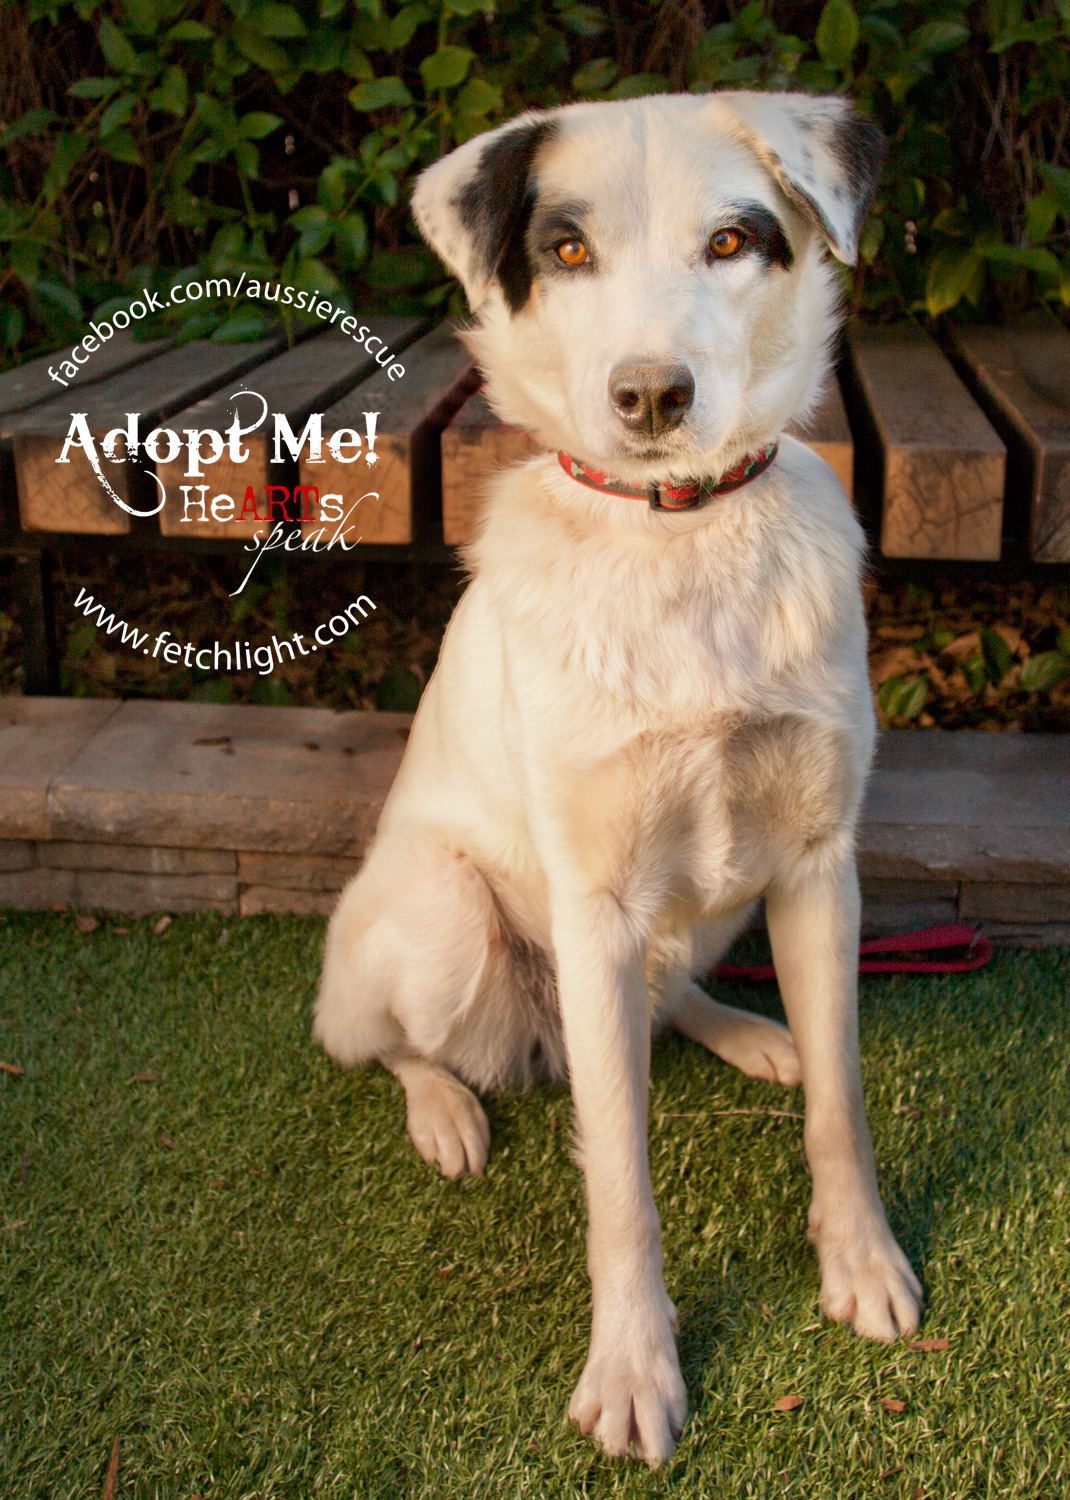 adoptable dog san diego aussie rescue